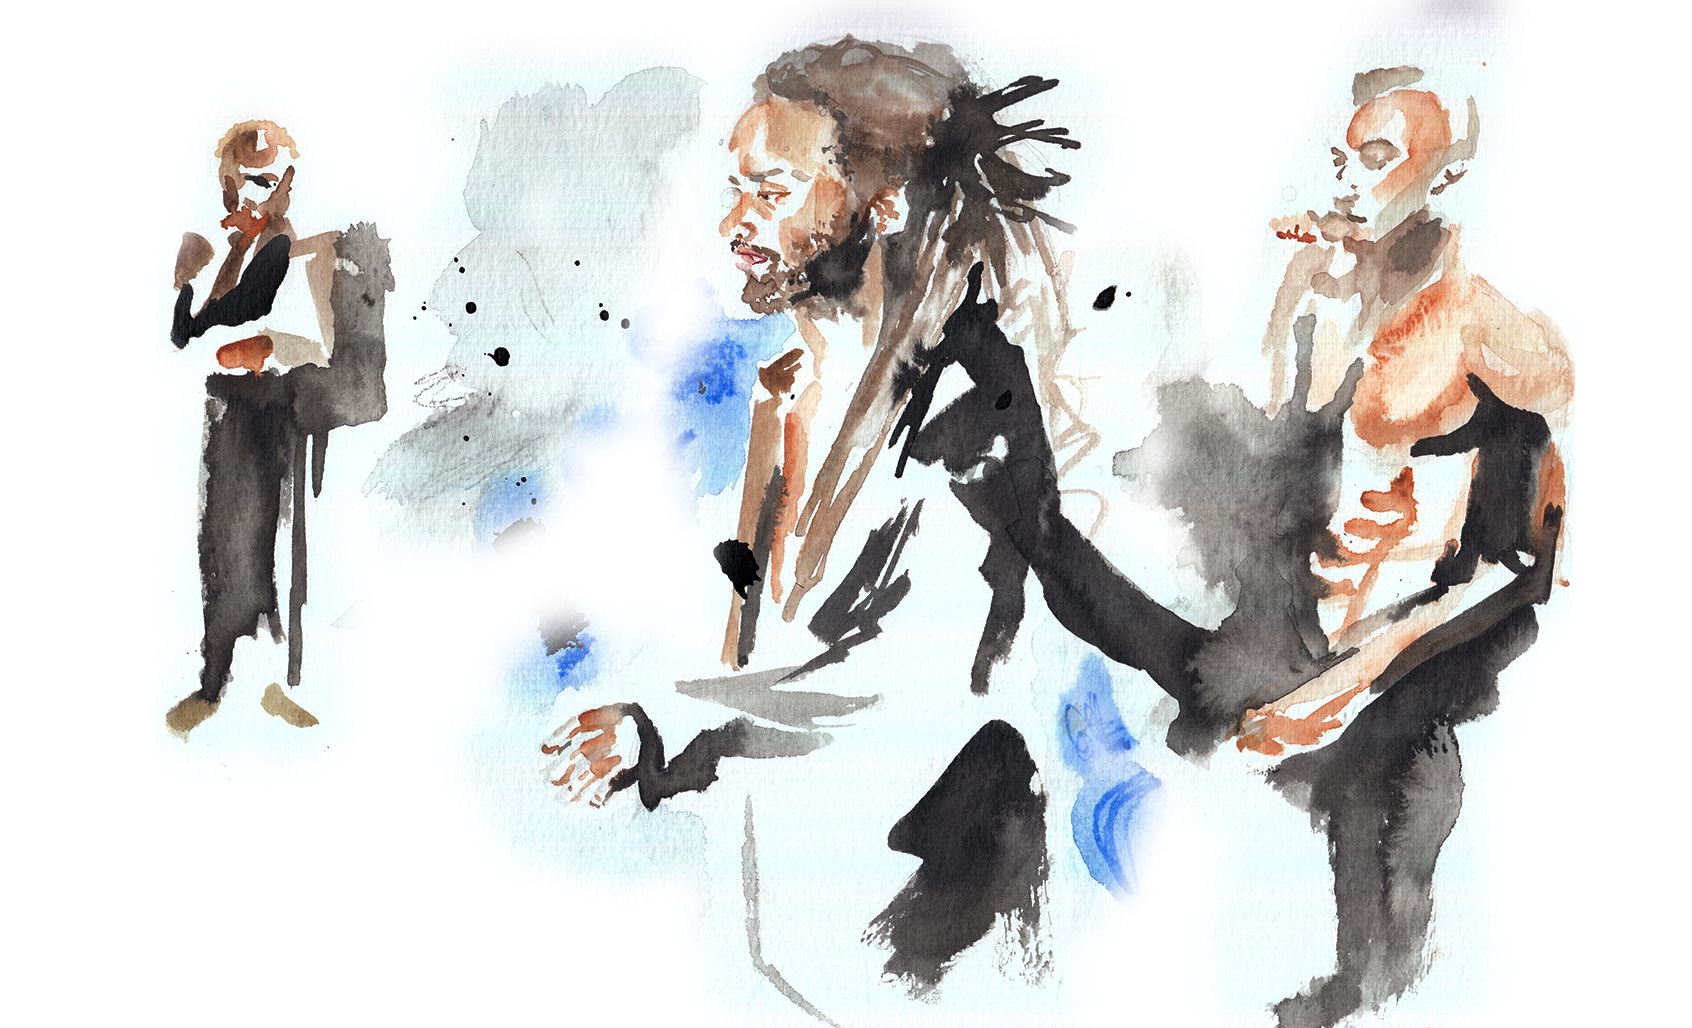 Samo, a tribute to Basquiat, illustration by Araso